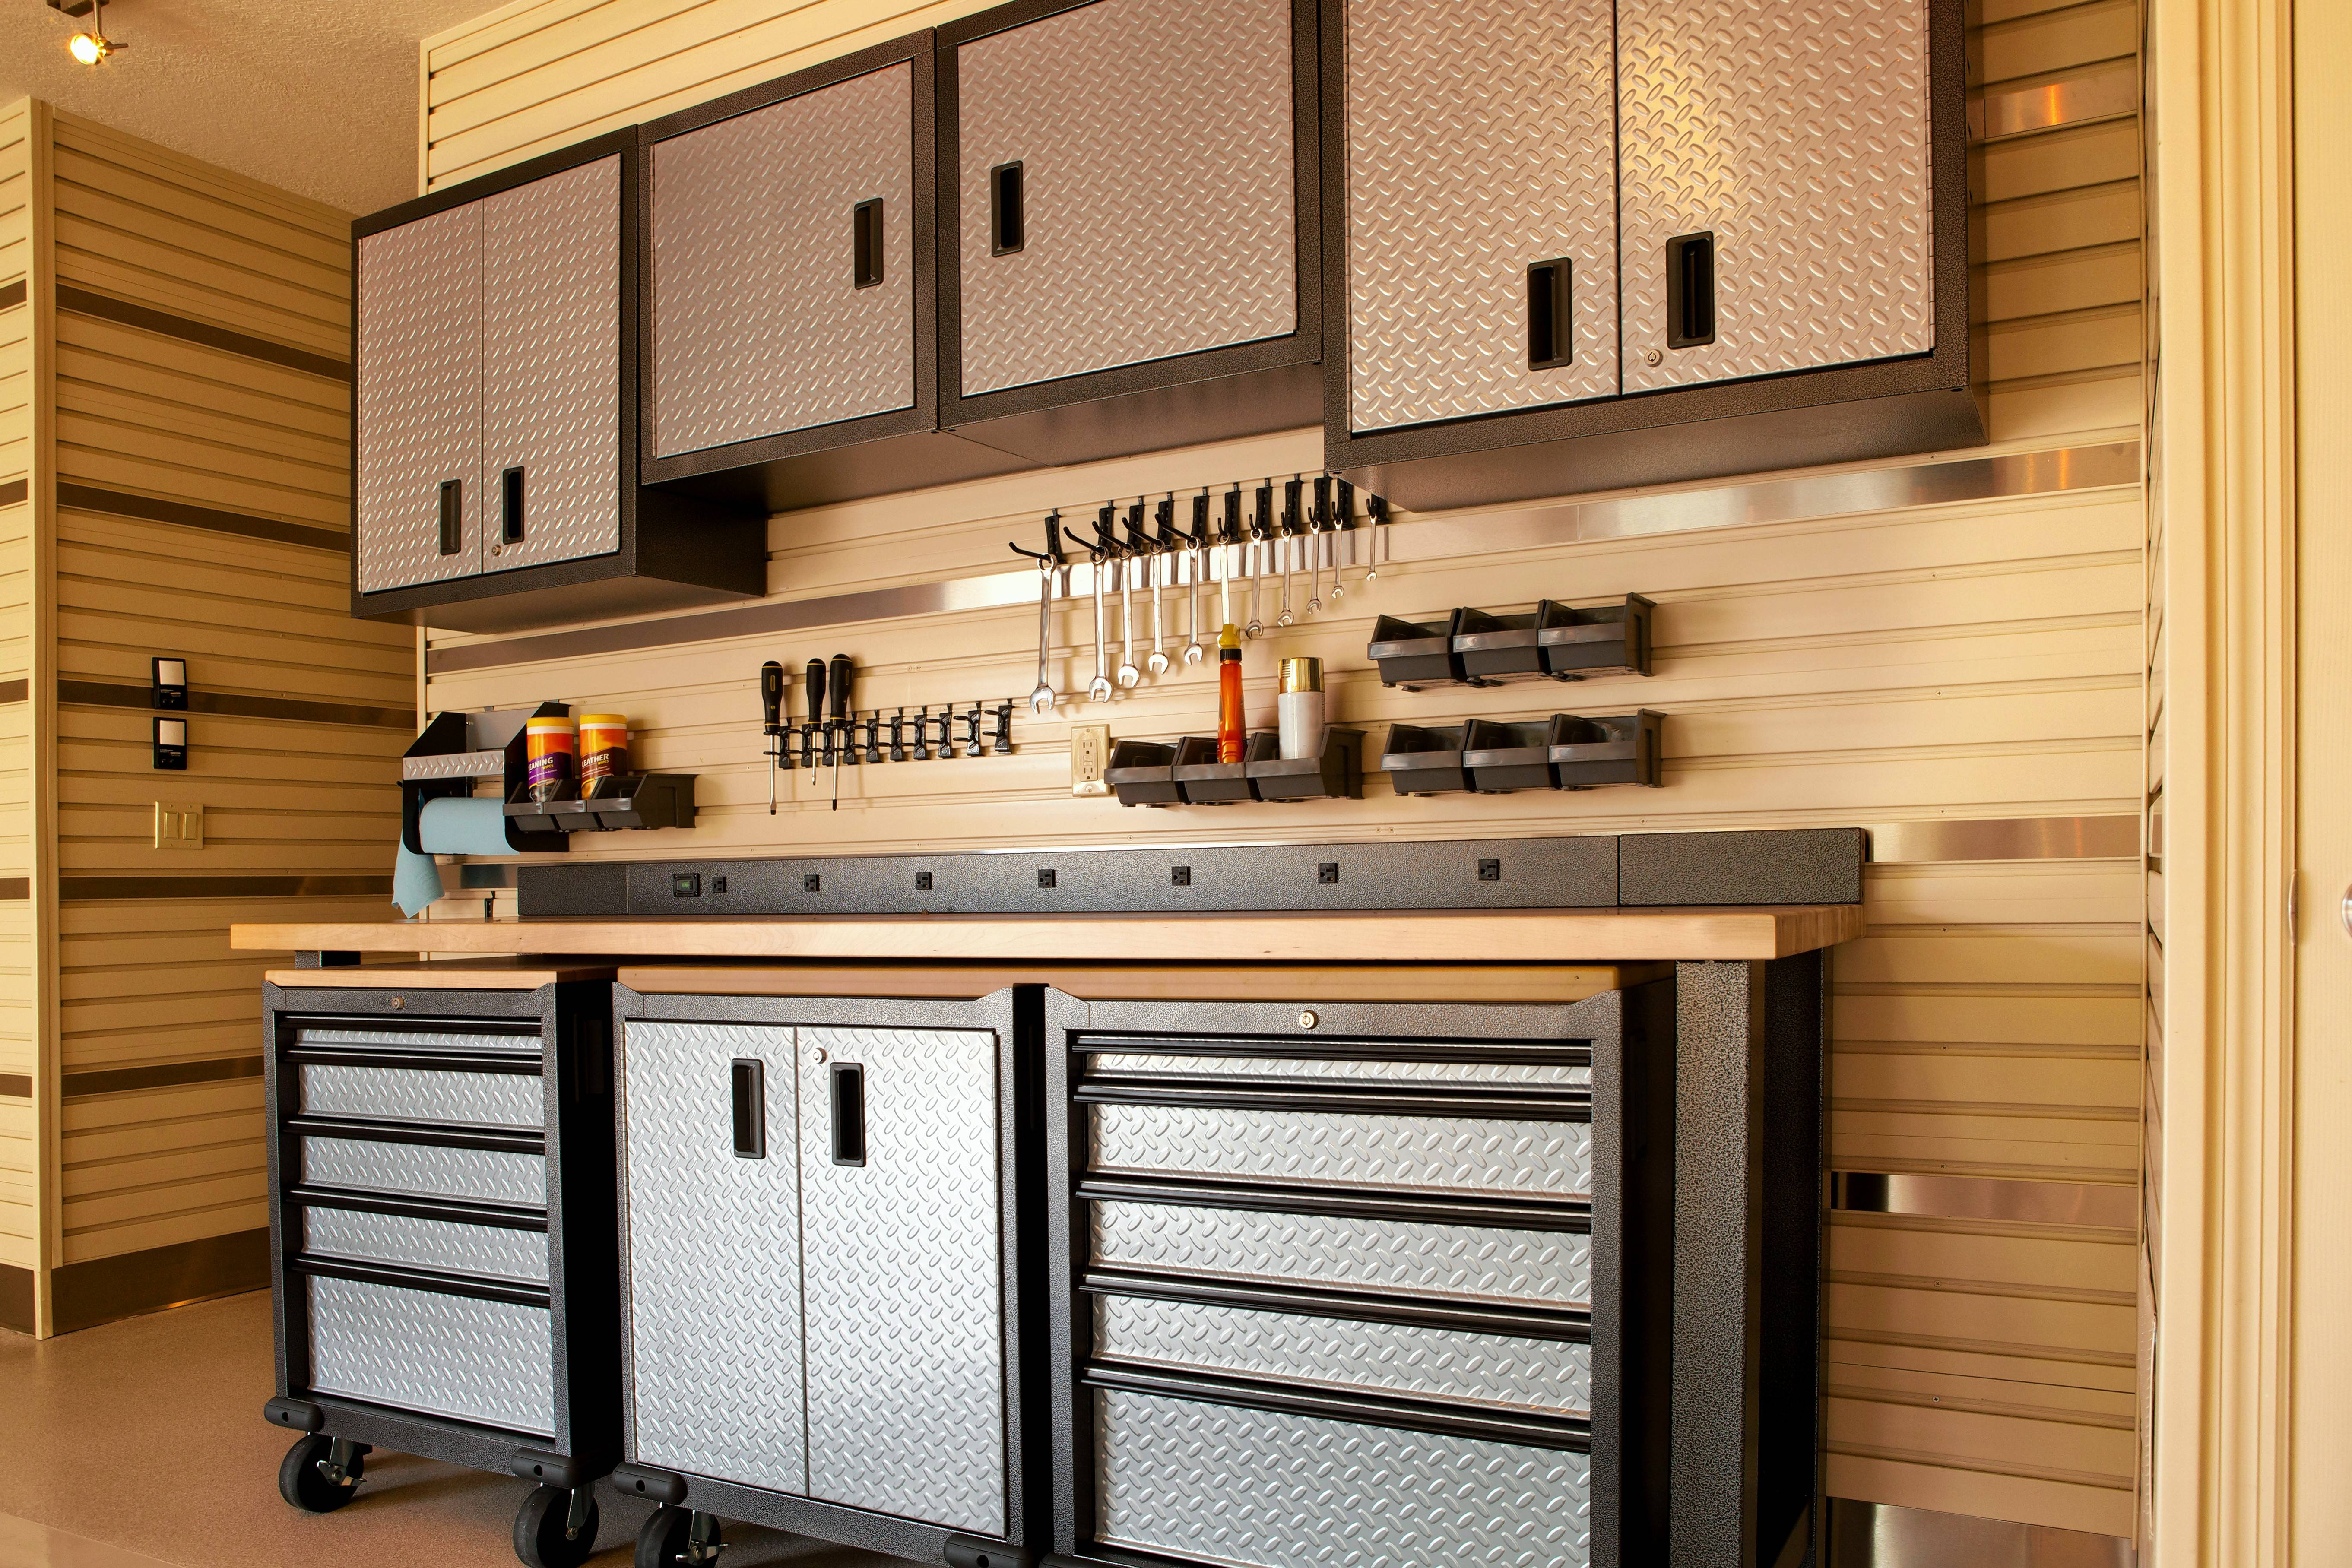 Garage workspaces with cabinets and a countertop make it easy to store tools and keep organized.